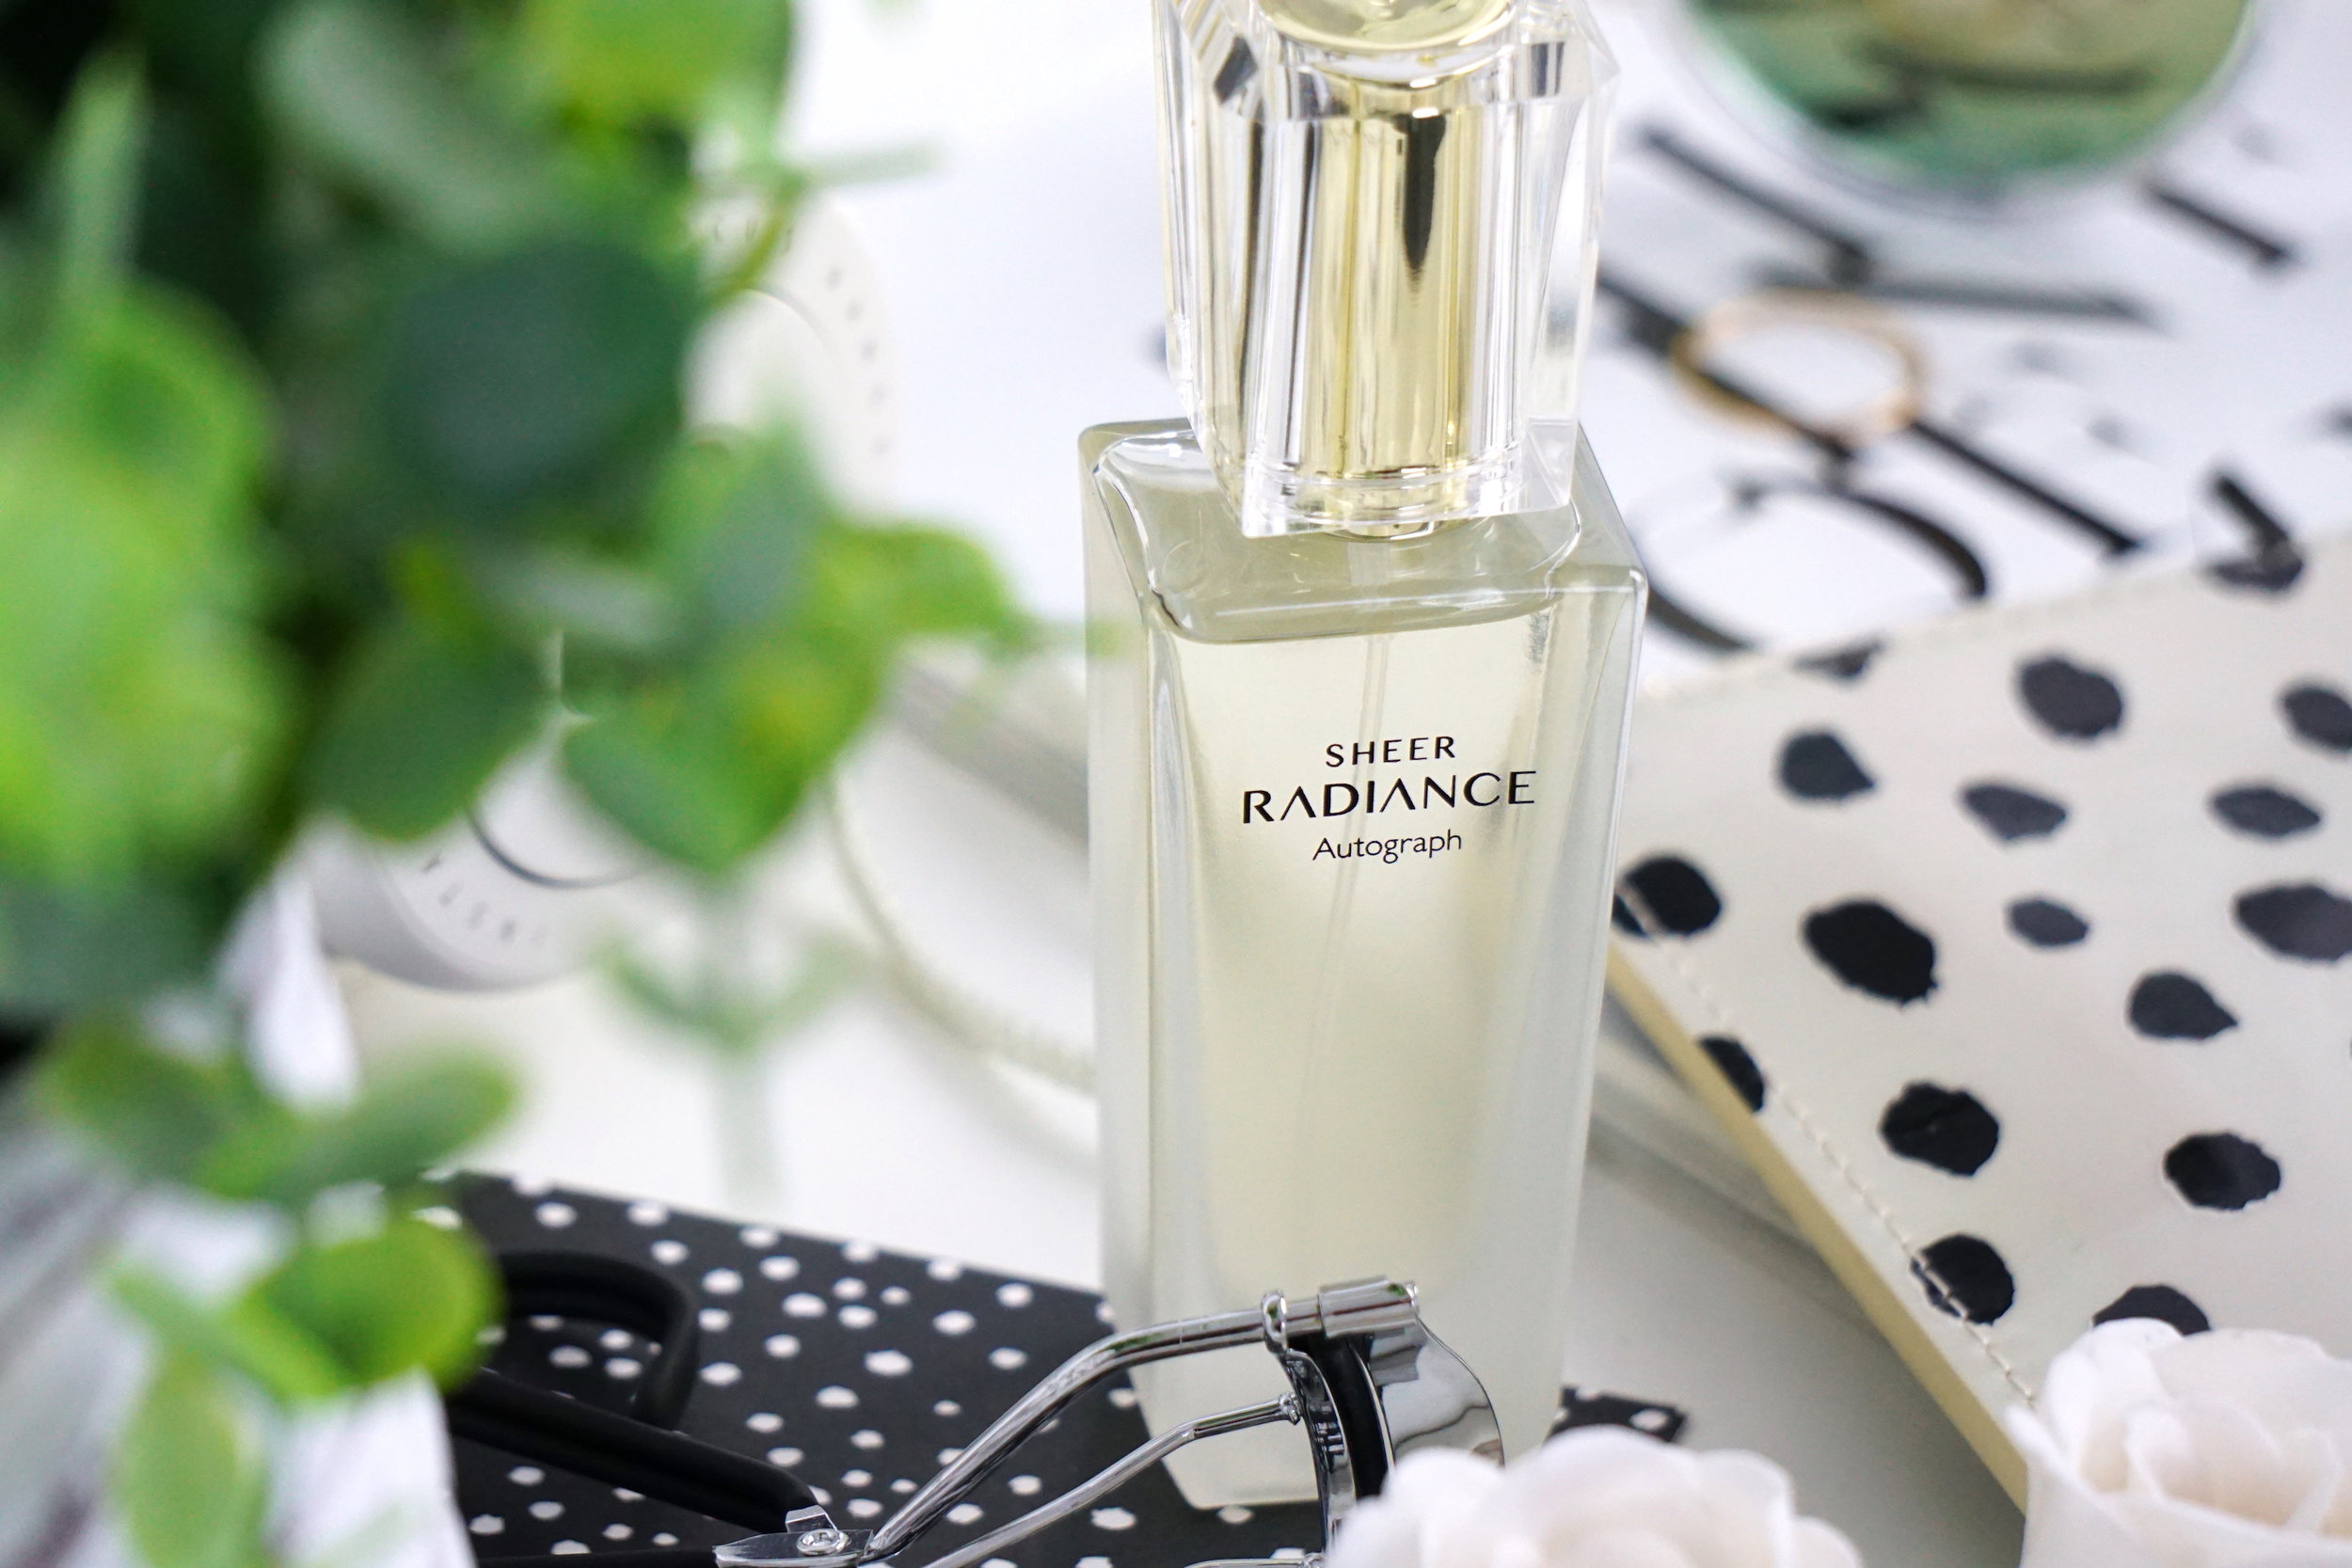 AutographSheer Radiance Fragrance - This is such a delicate, fruity fragrance with a hint of floral and I absolutely love it. I think it's ideal for Summer as it's not at all overpowering so you can just do away with a light spritz and it's more than enough without smelling like you've just walked through a meadow (although, that doesn't exactly sound like the worst thing ever does it!)